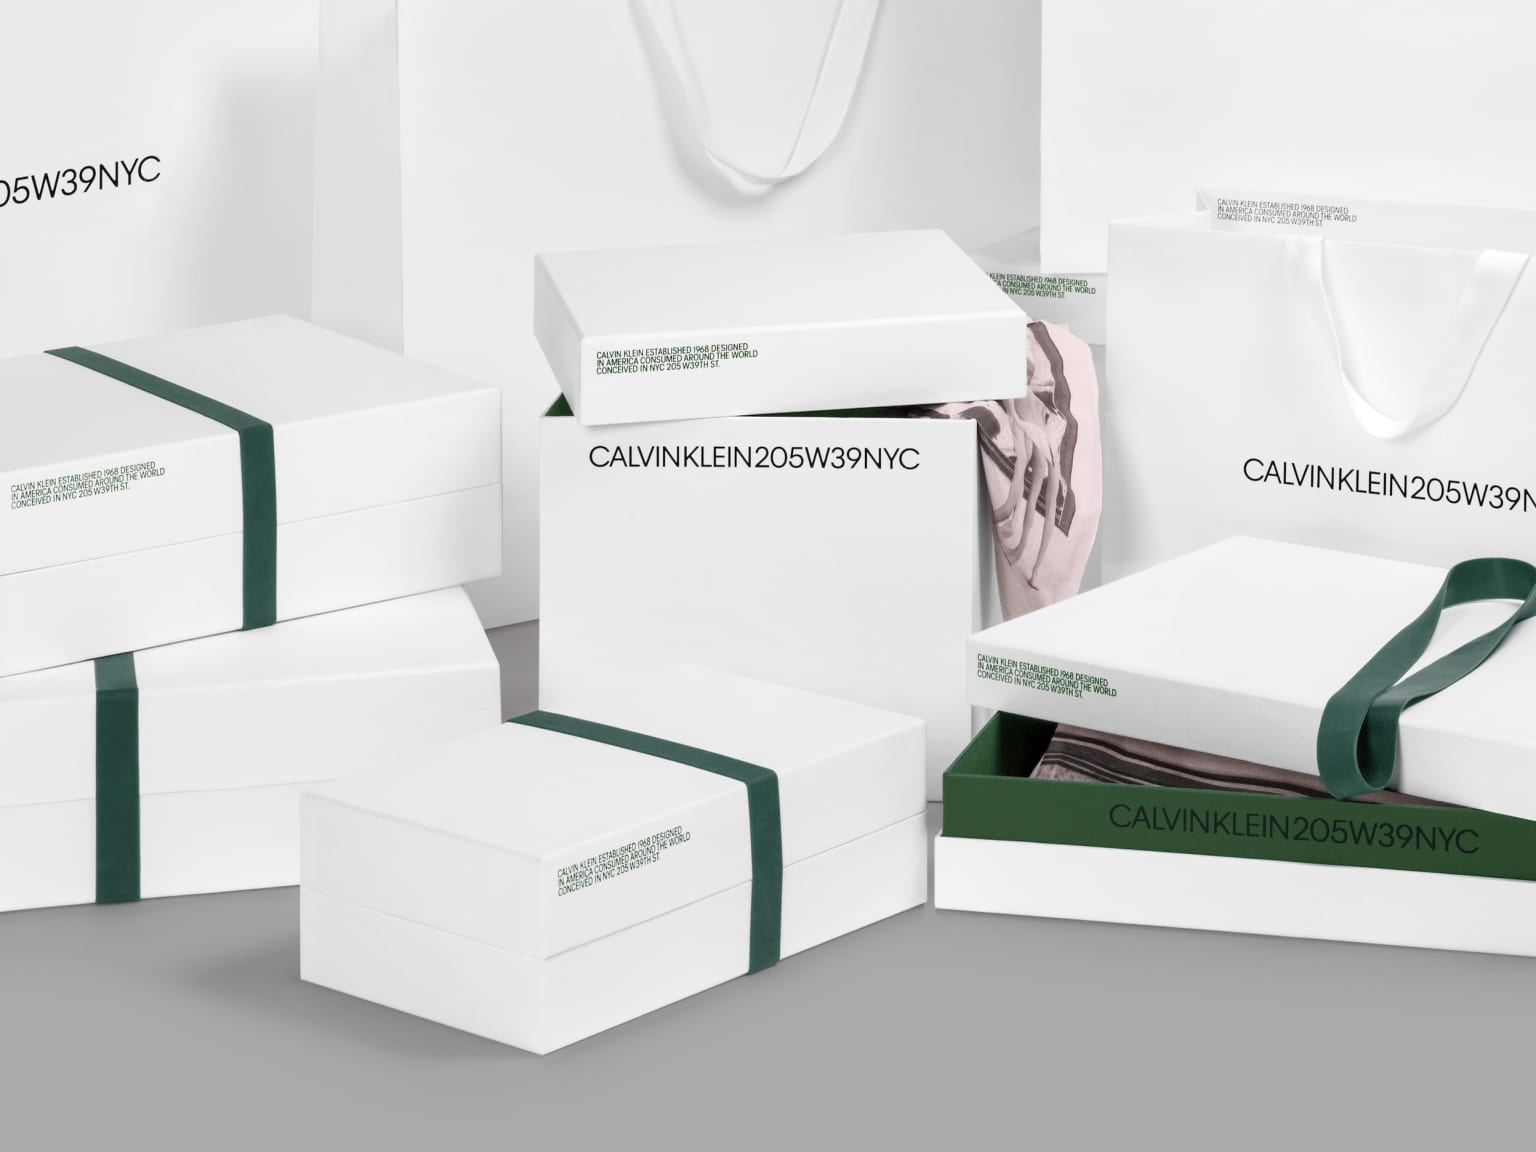 Calvin Klein 205W39NYC Packaging